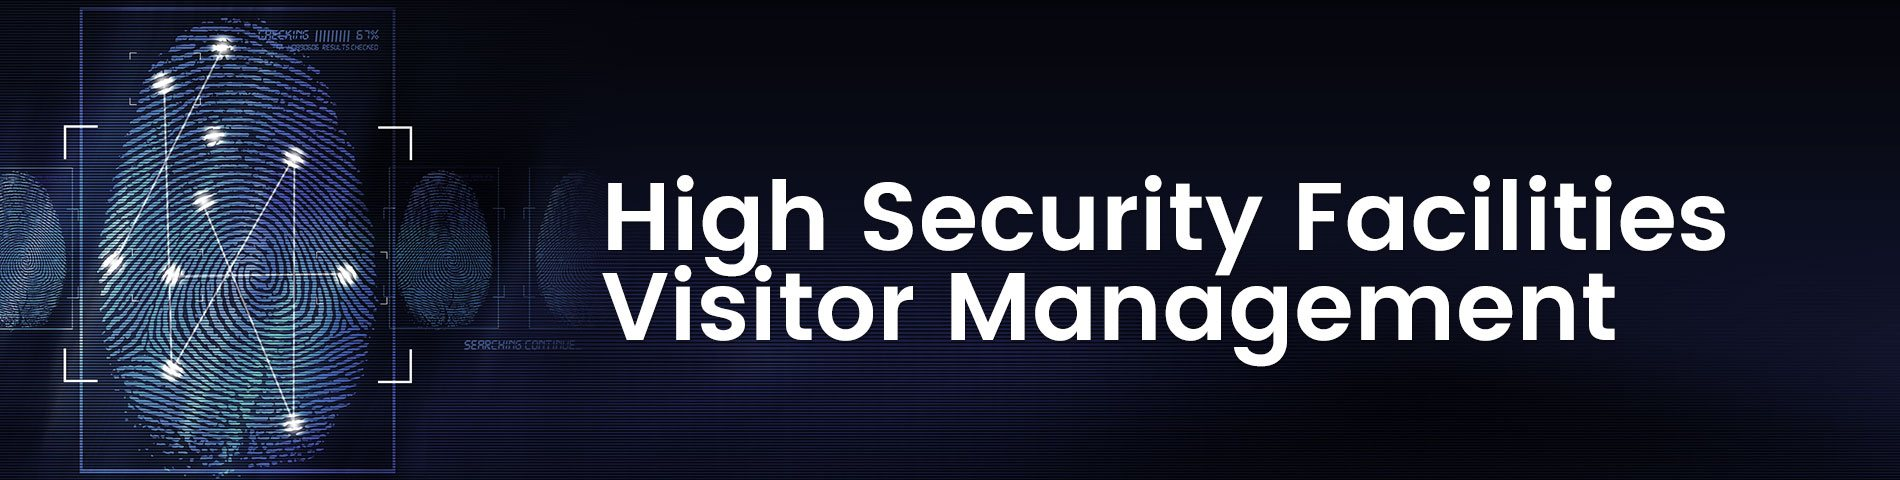 High Security Facilities Visitor Management